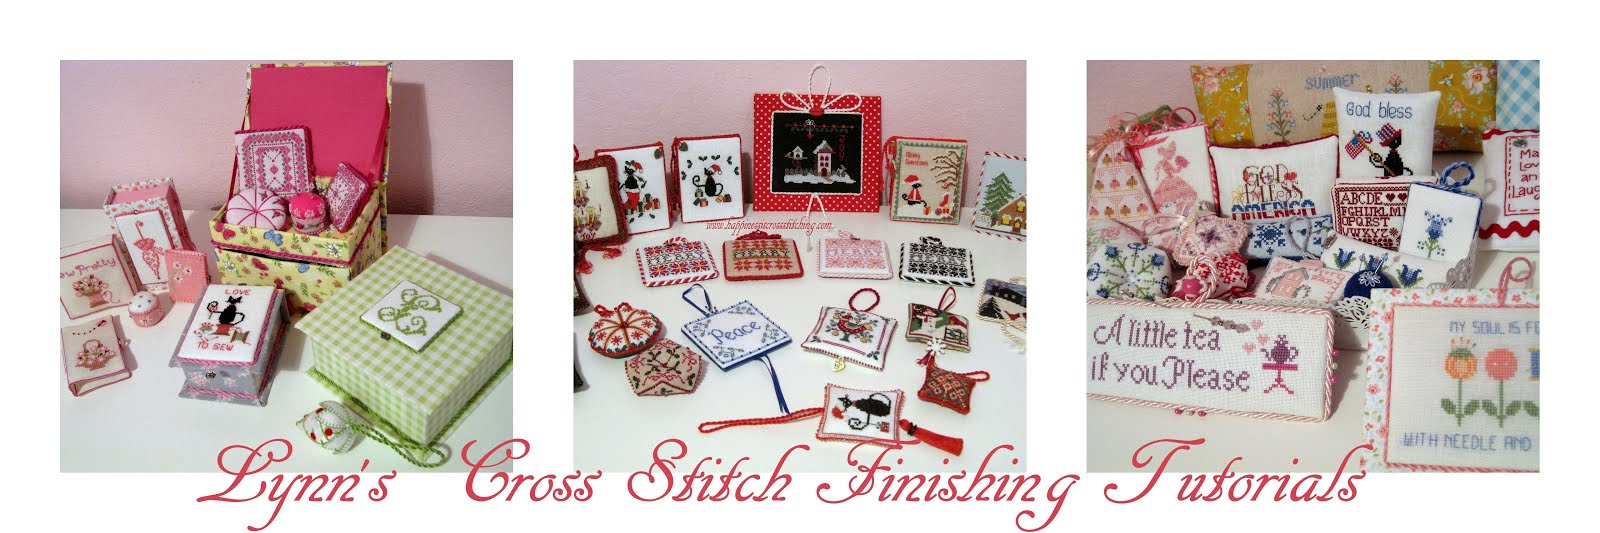 Lynn B 's finishing instructions for cross stitch